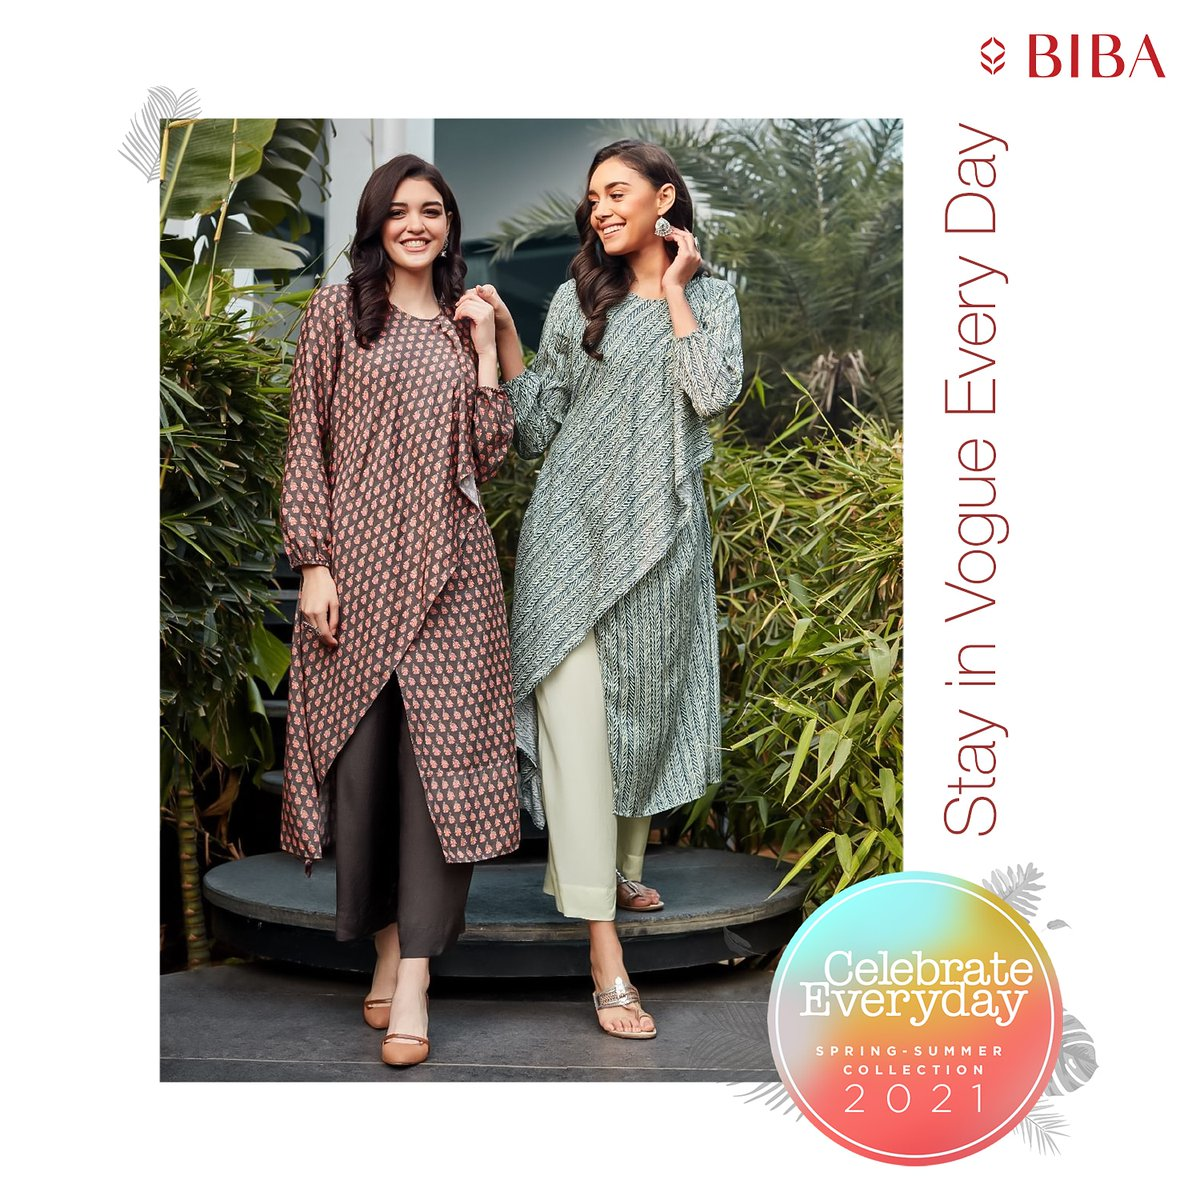 Make a fashion statement this Summer.  Shop for these Stylized Duet from our #SpringSummerCollection 2021.  🛍️➡️ https://t.co/a0Z3c0uOUs https://t.co/IN4lYjUwUc